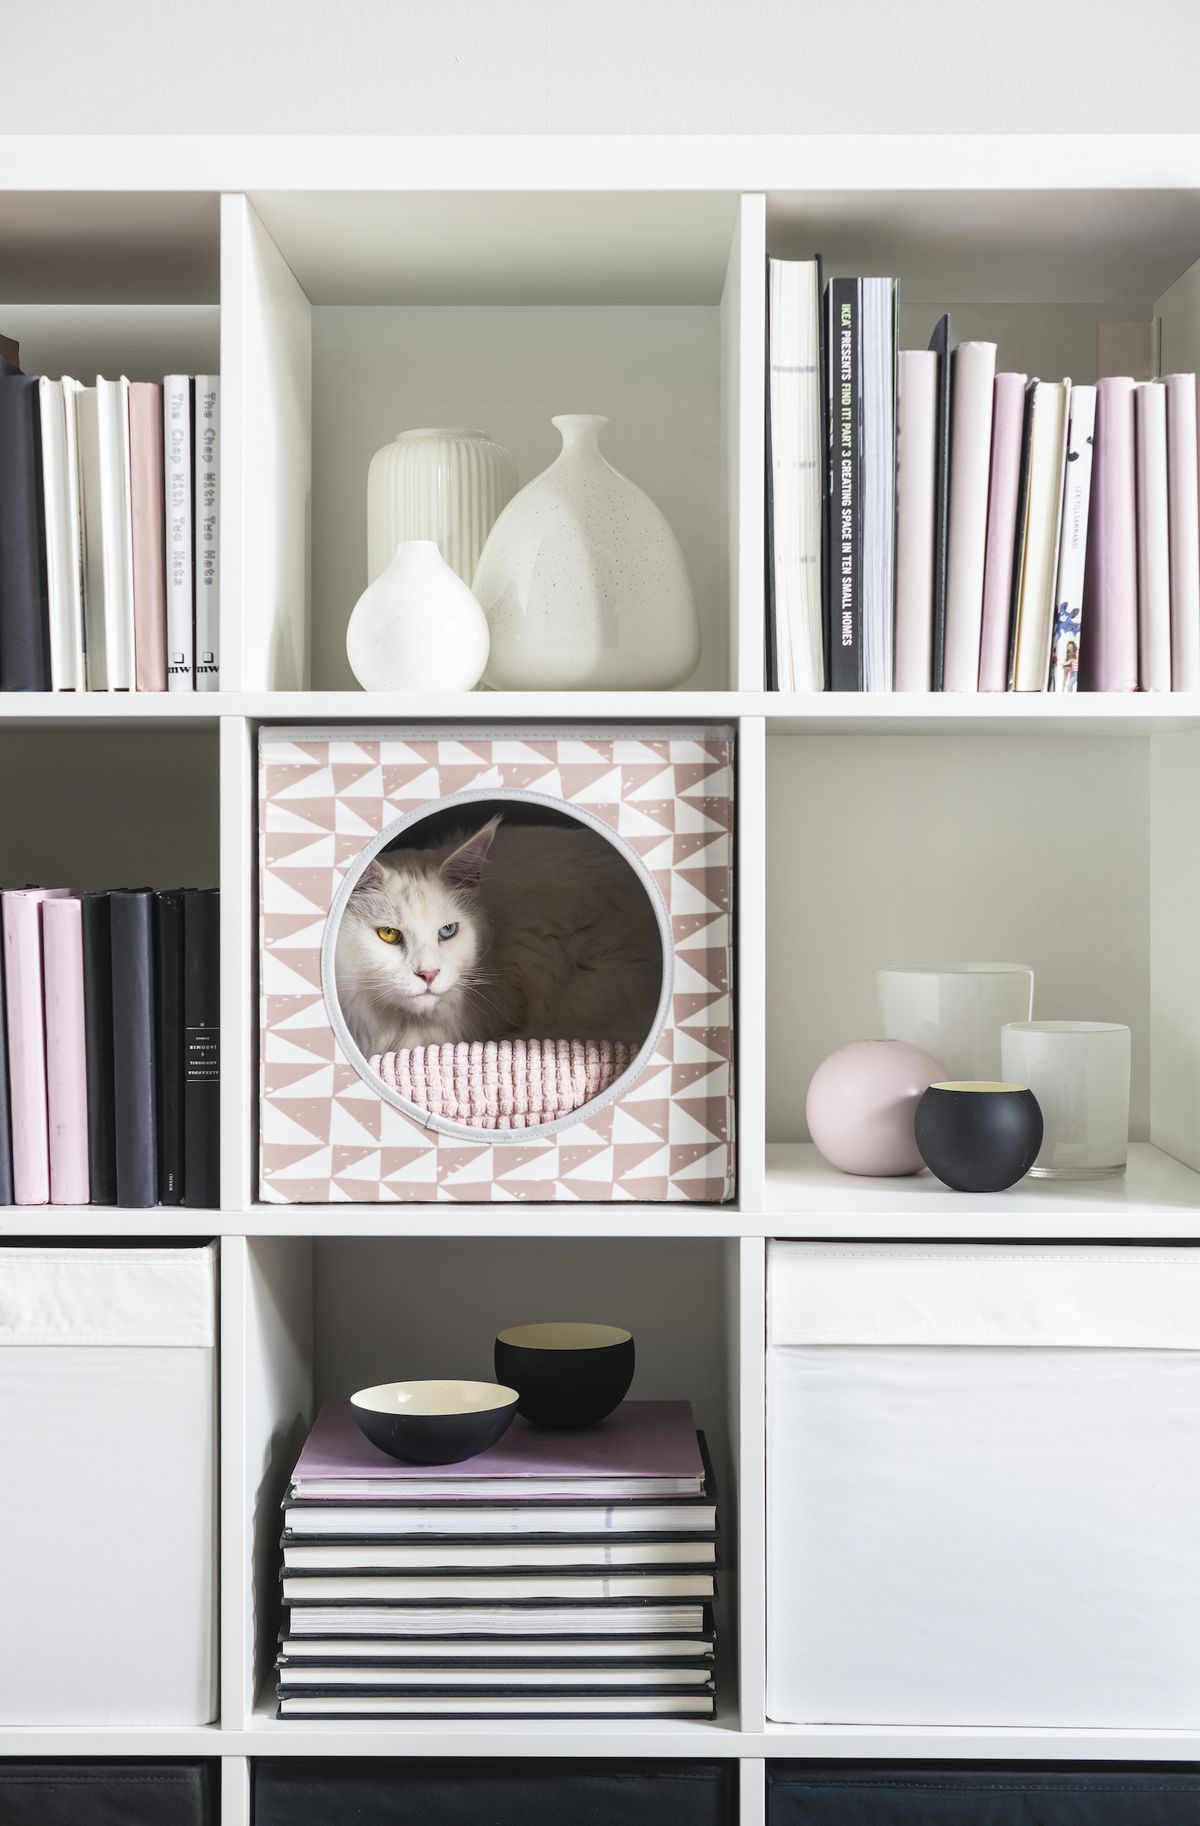 Cat in a pink patterned cube bed in a shelf.